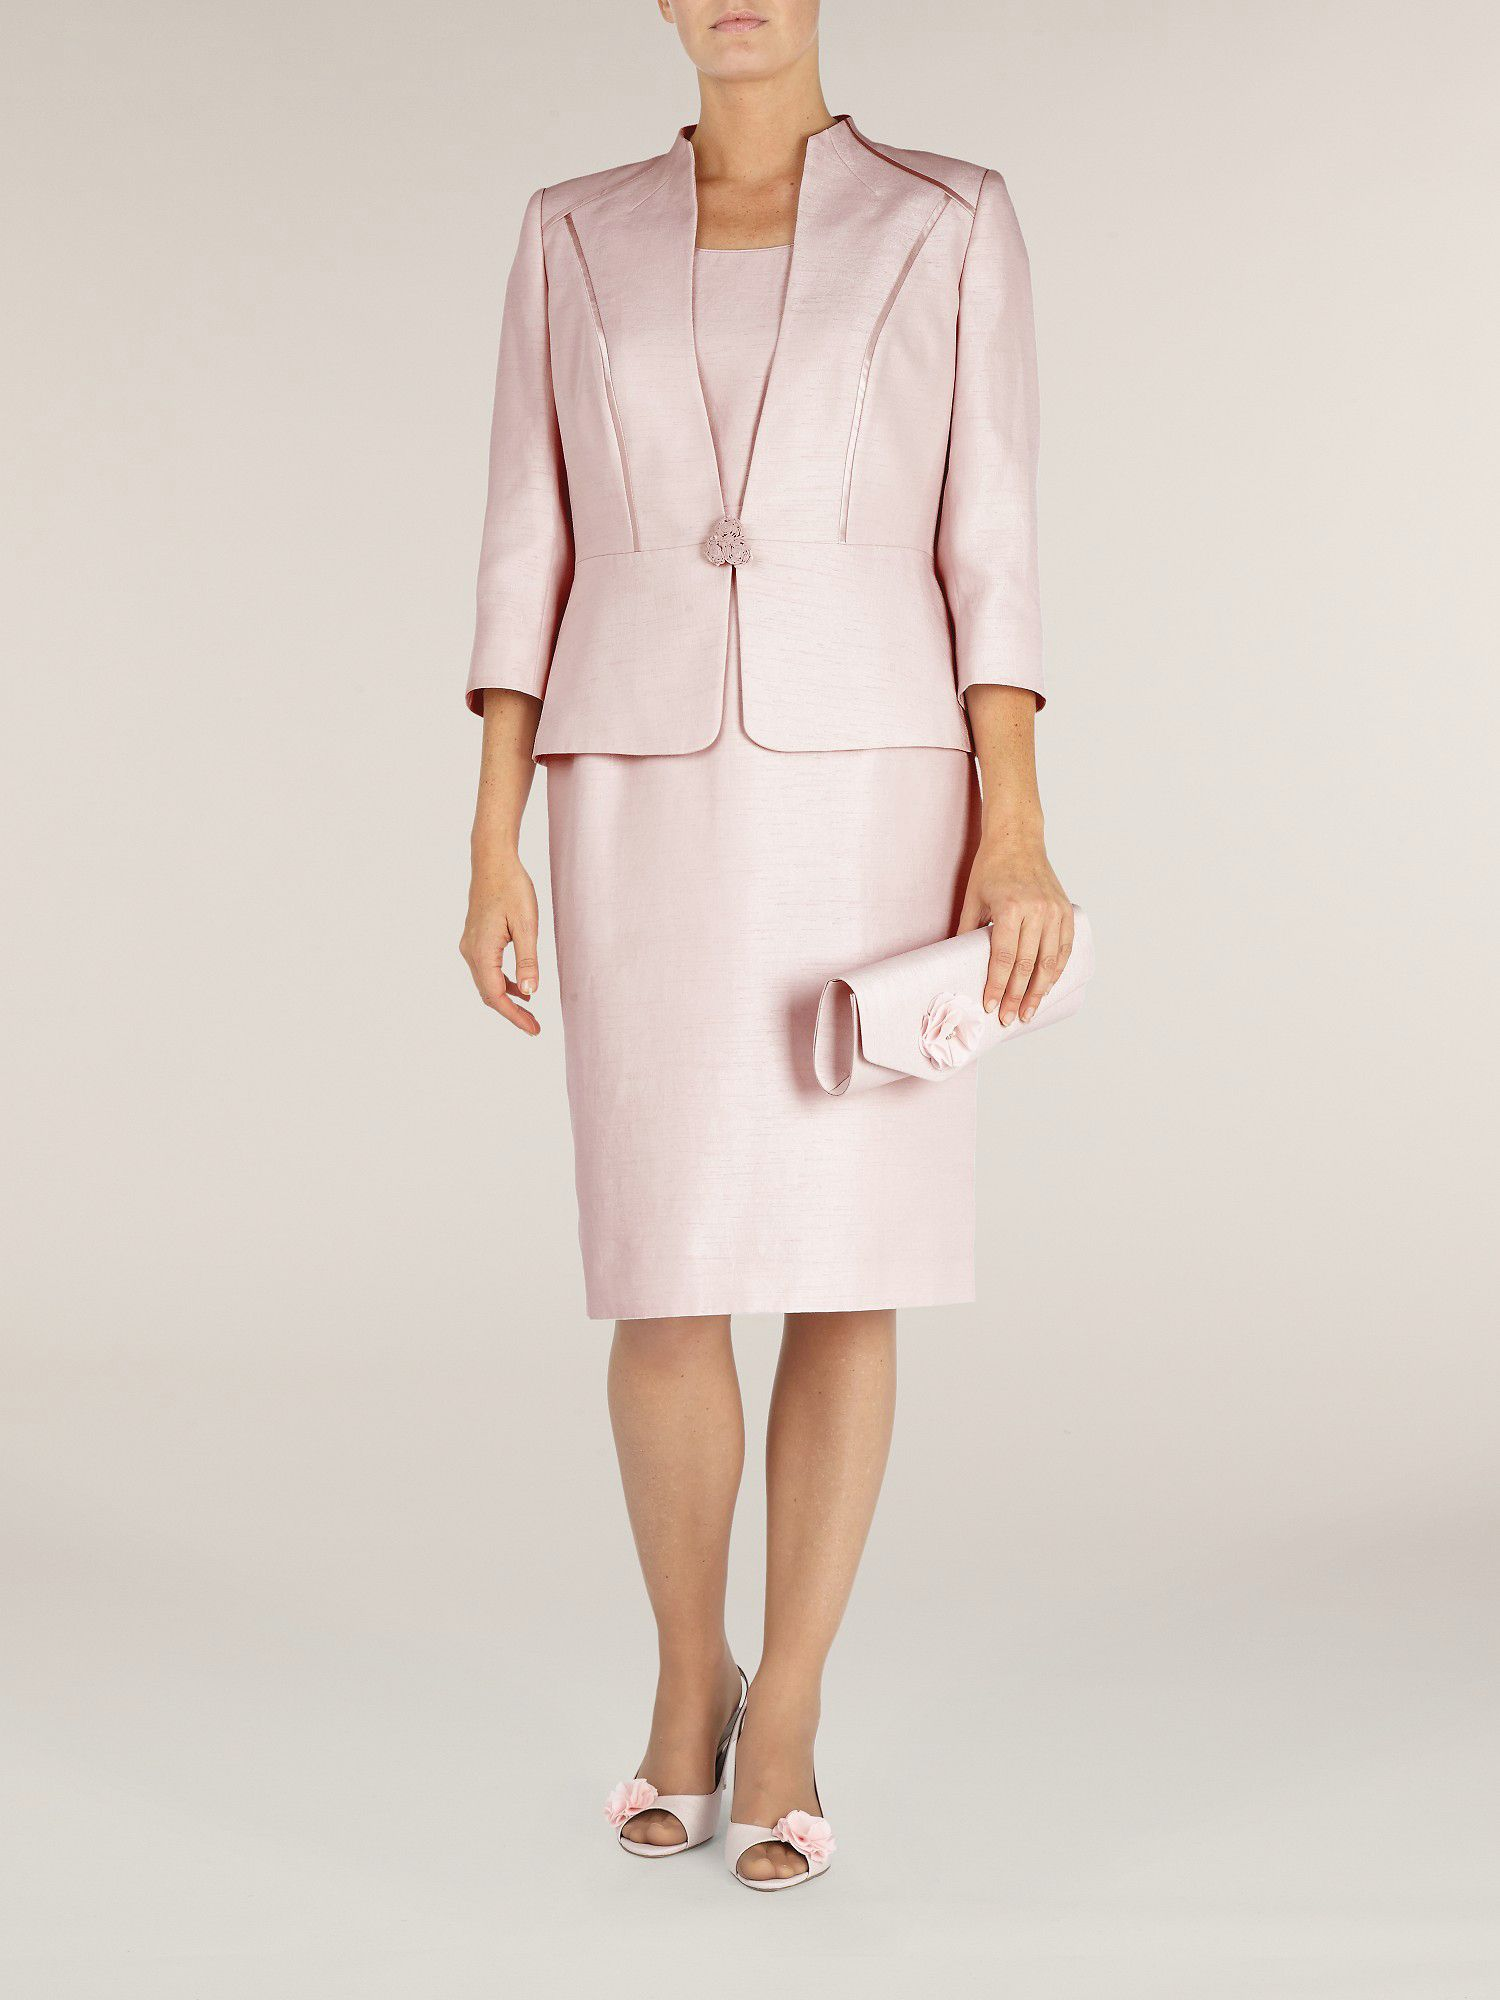 Shell pink occasion jacket